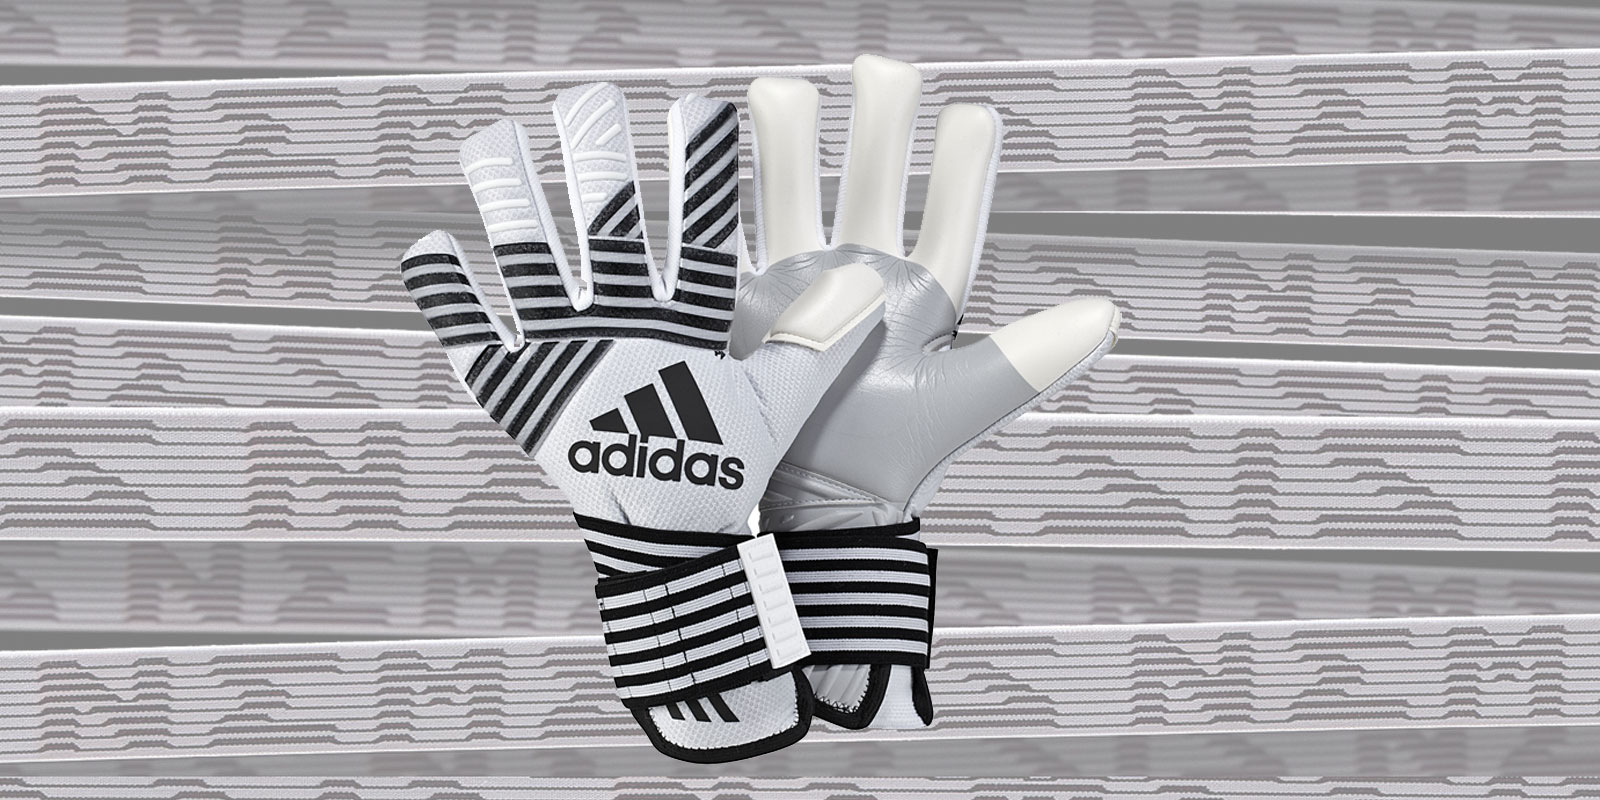 Adidas Ace Trans Pro 2017/2018 Torwarthandschuhe Kevin Trapp, Marc Andre ter Stegen kaufen